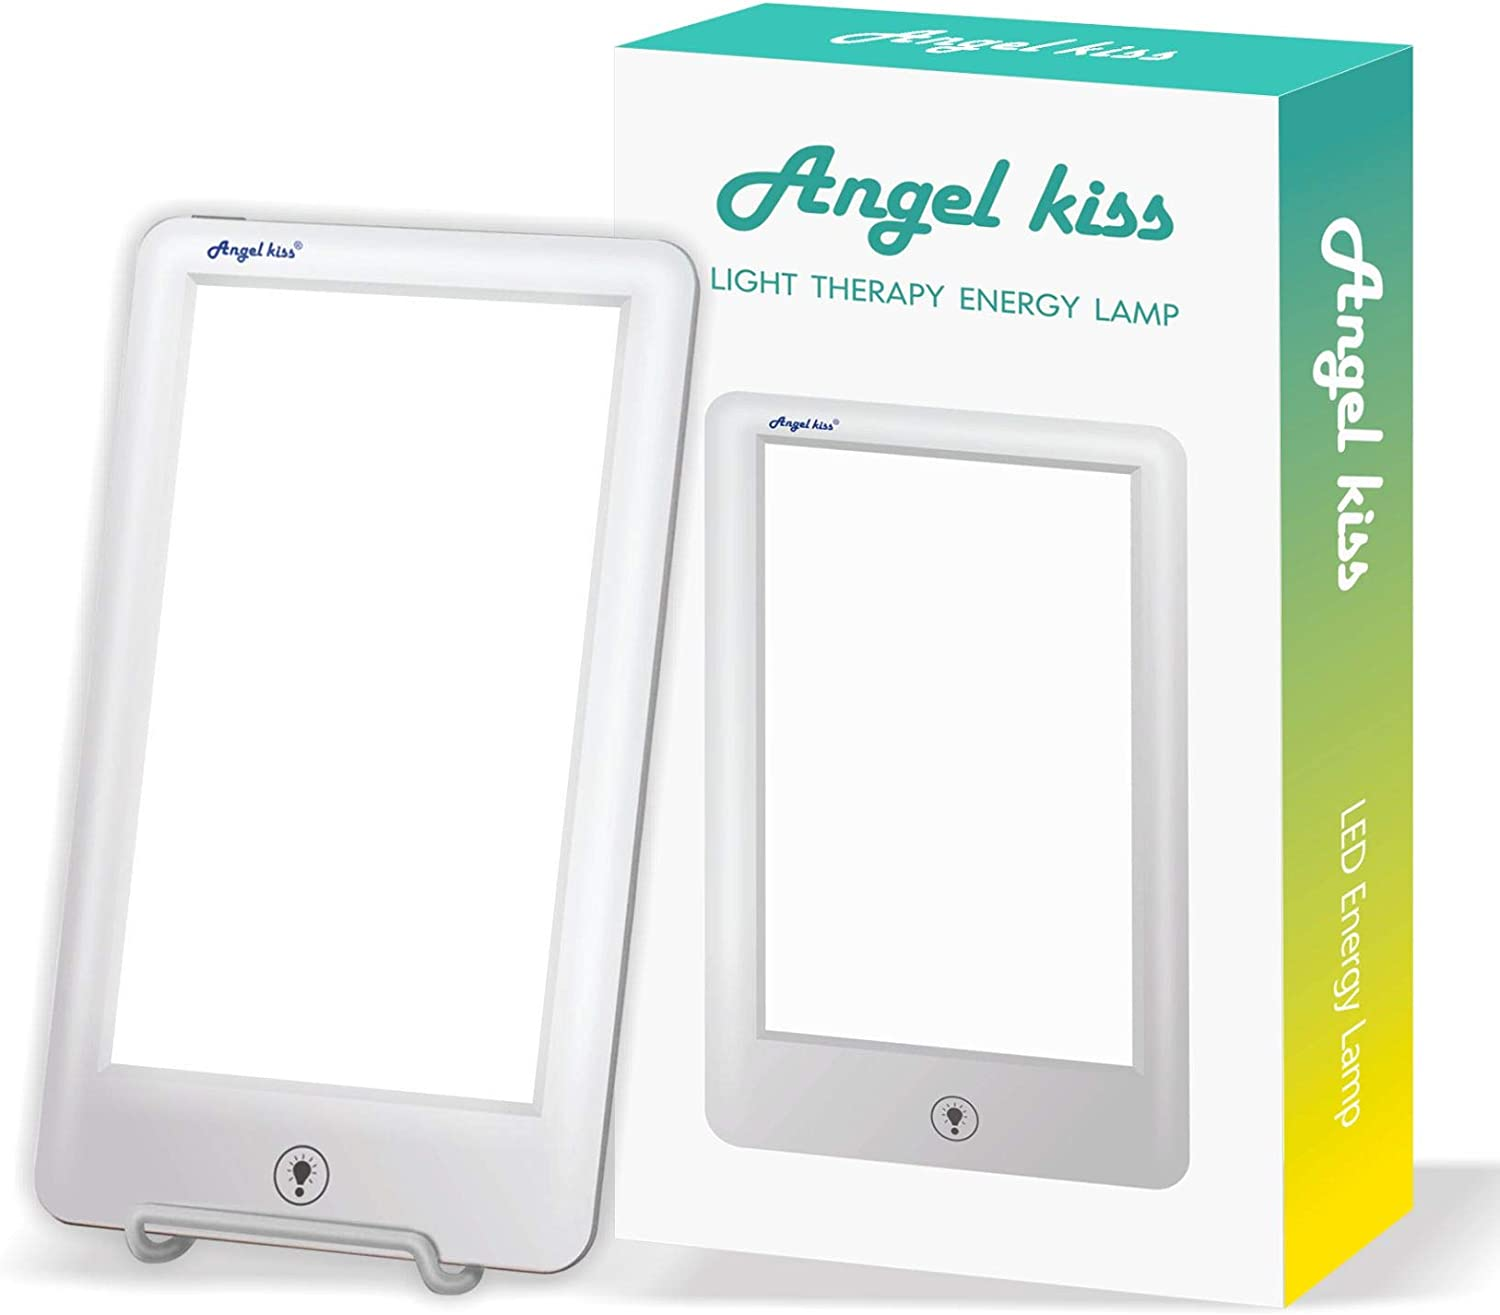 LED Light Therapy Lamp – Angel Kiss Touch 10,000 Lux Full Spectrum Happy Energy Light Sun Lamp – Bright White Daylight Box -MS7502